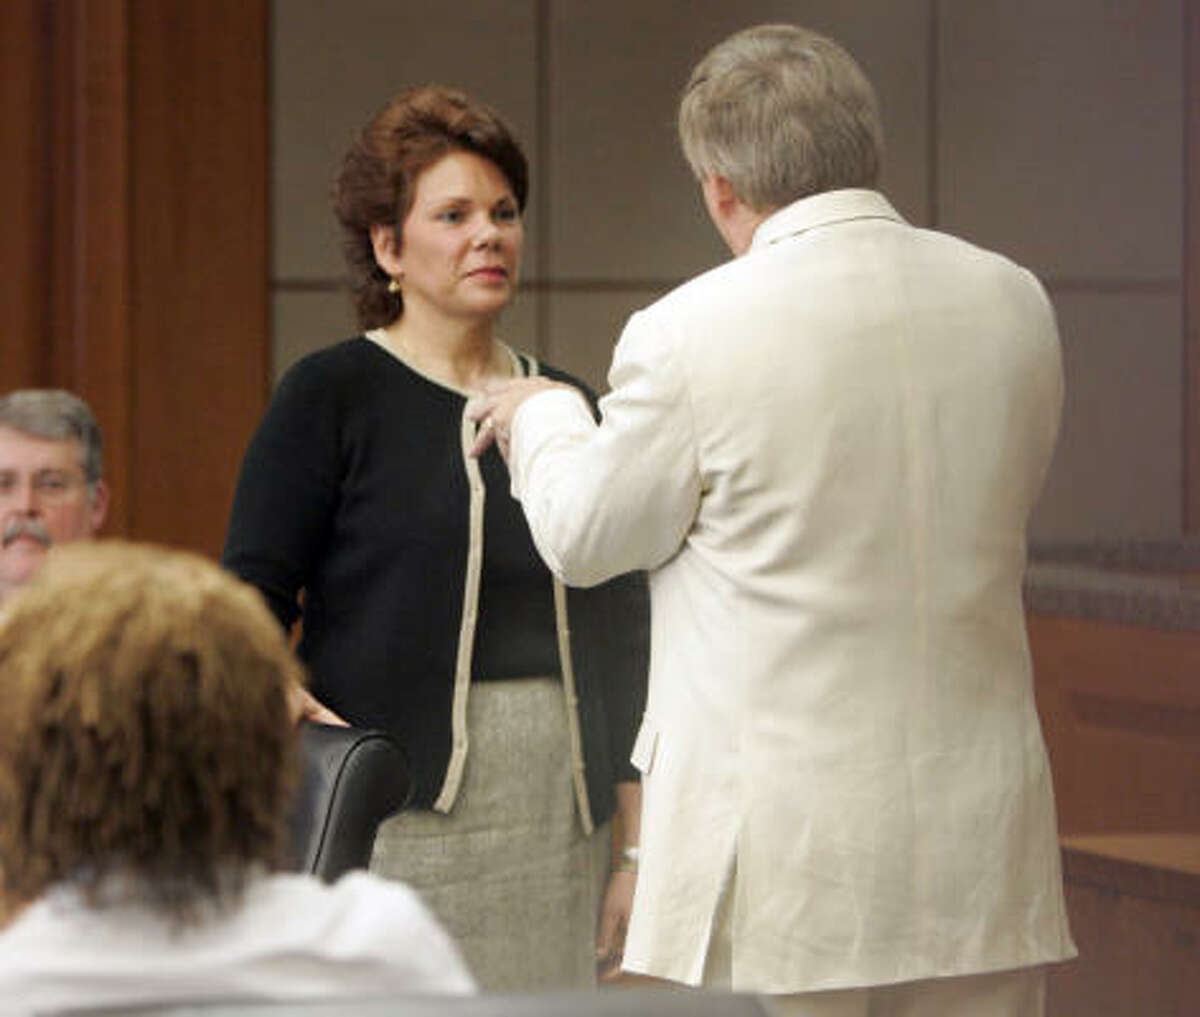 Continental flight attendant Maria Johnson, center, is questioned by defense attorney Rusty Hardin as the plaintiff Sharon Brown, lower left, watches Thursday, Aug. 7, 2008 in Houston.